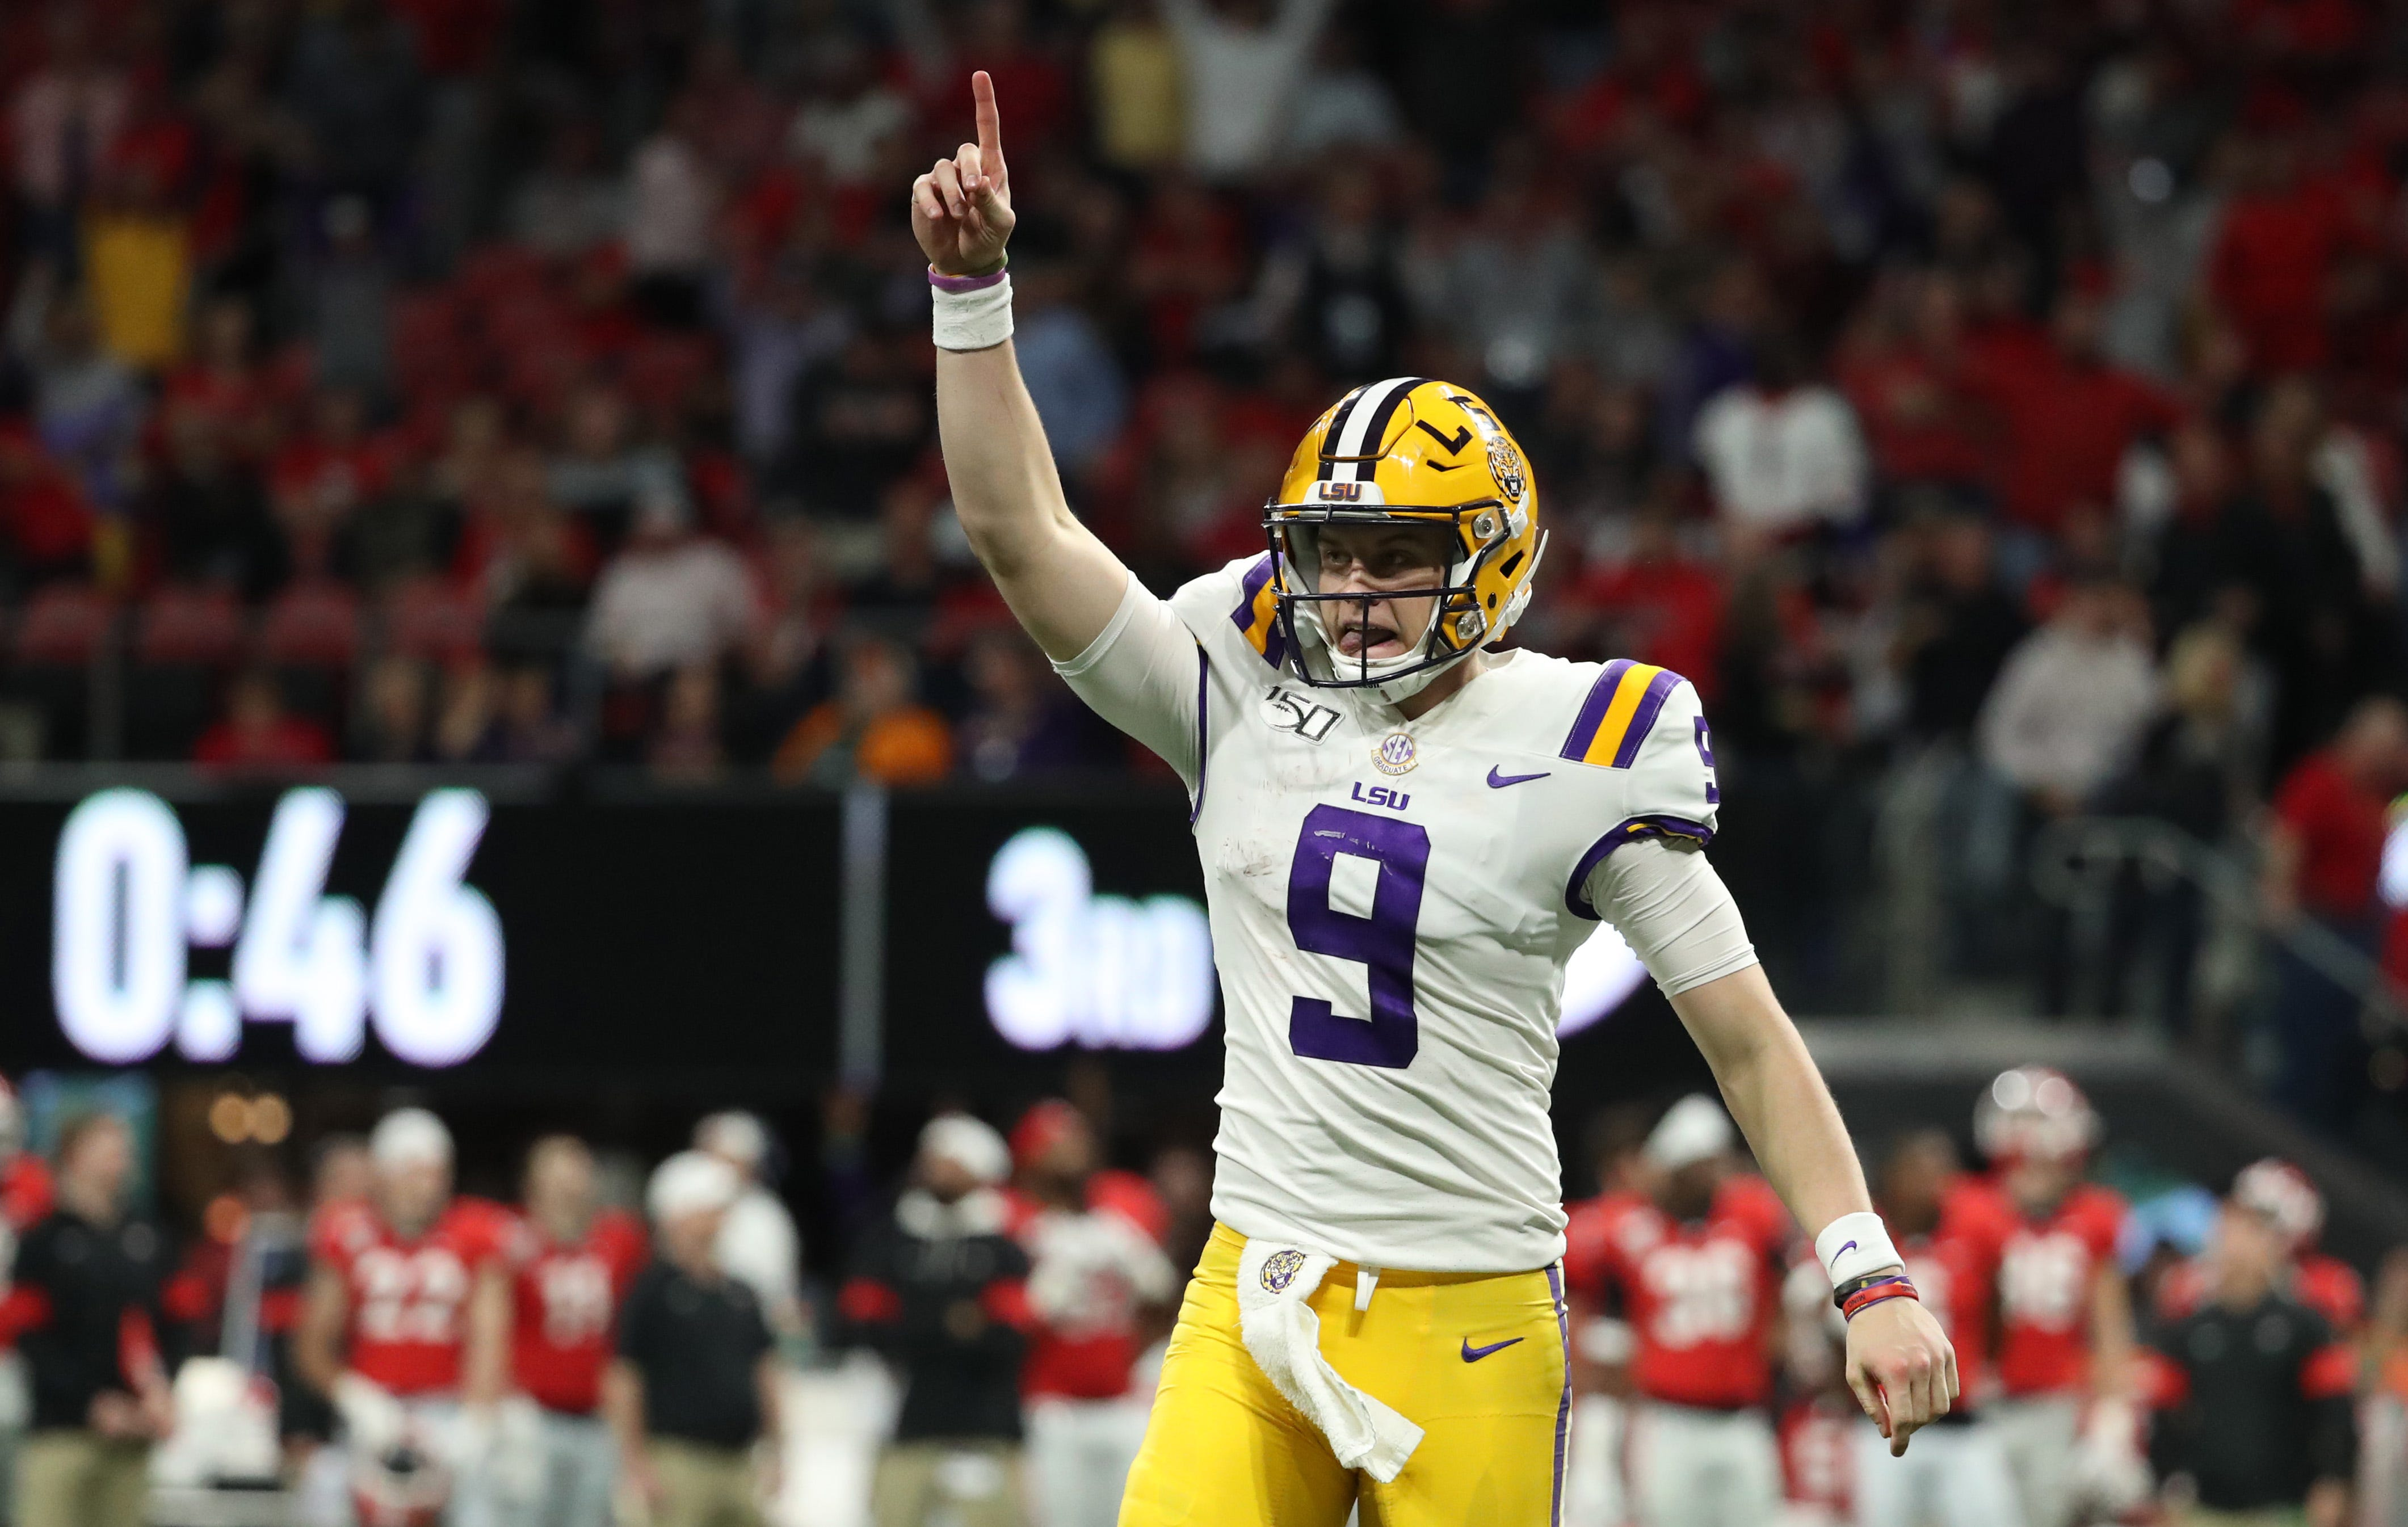 Opinion: With offense that seemingly can't be stopped, LSU is team to beat in Playoff